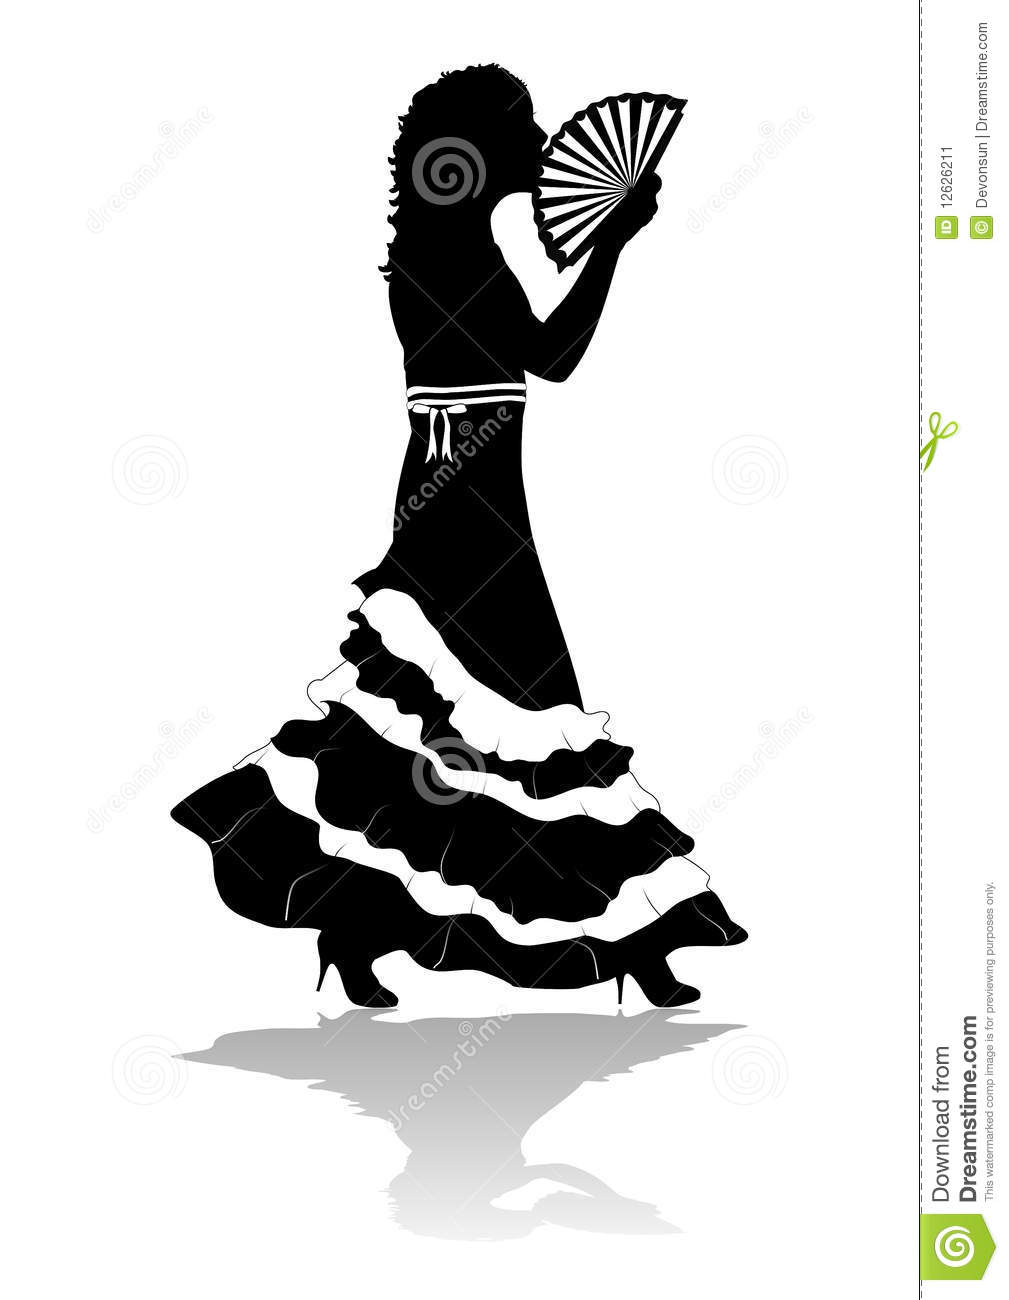 Girl In Dress Silhouette Stock Image - Image: 12626211